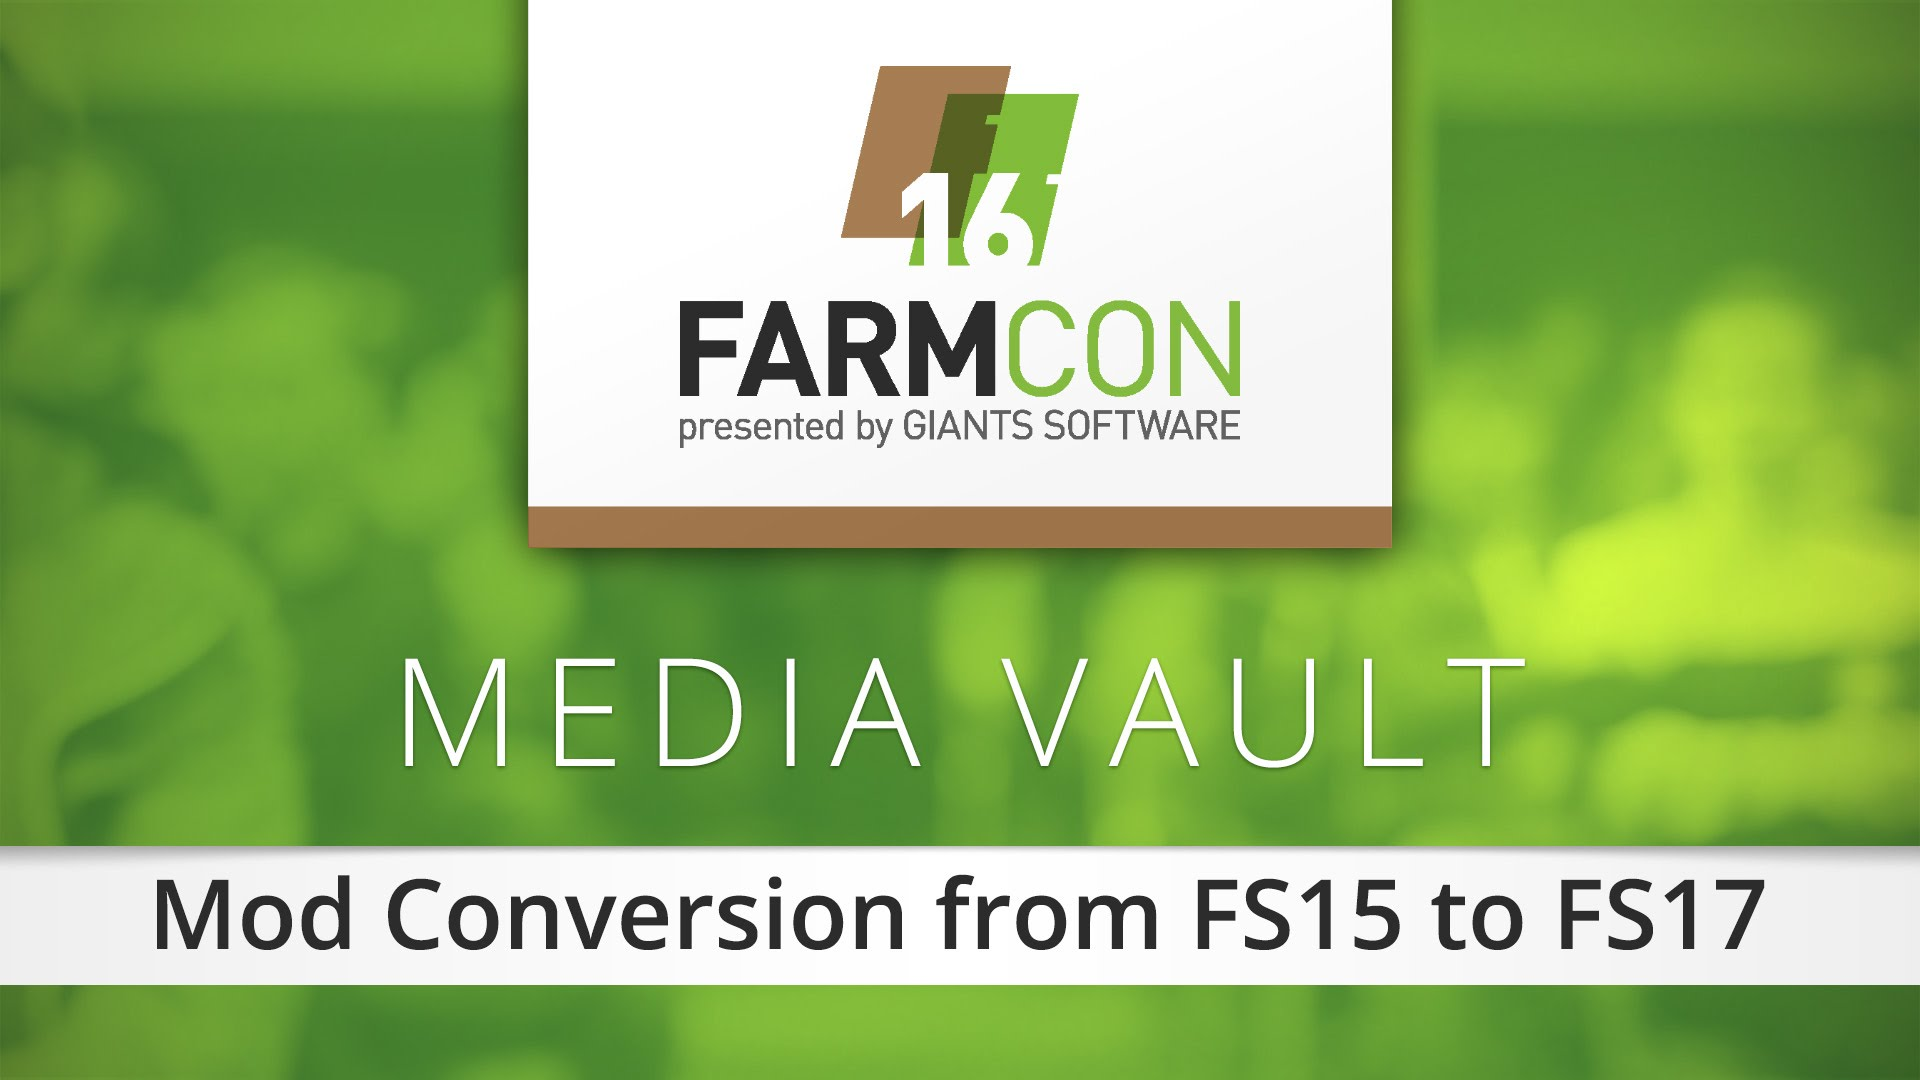 FarmCon16 - Mod Conversion from FS15 to FS17